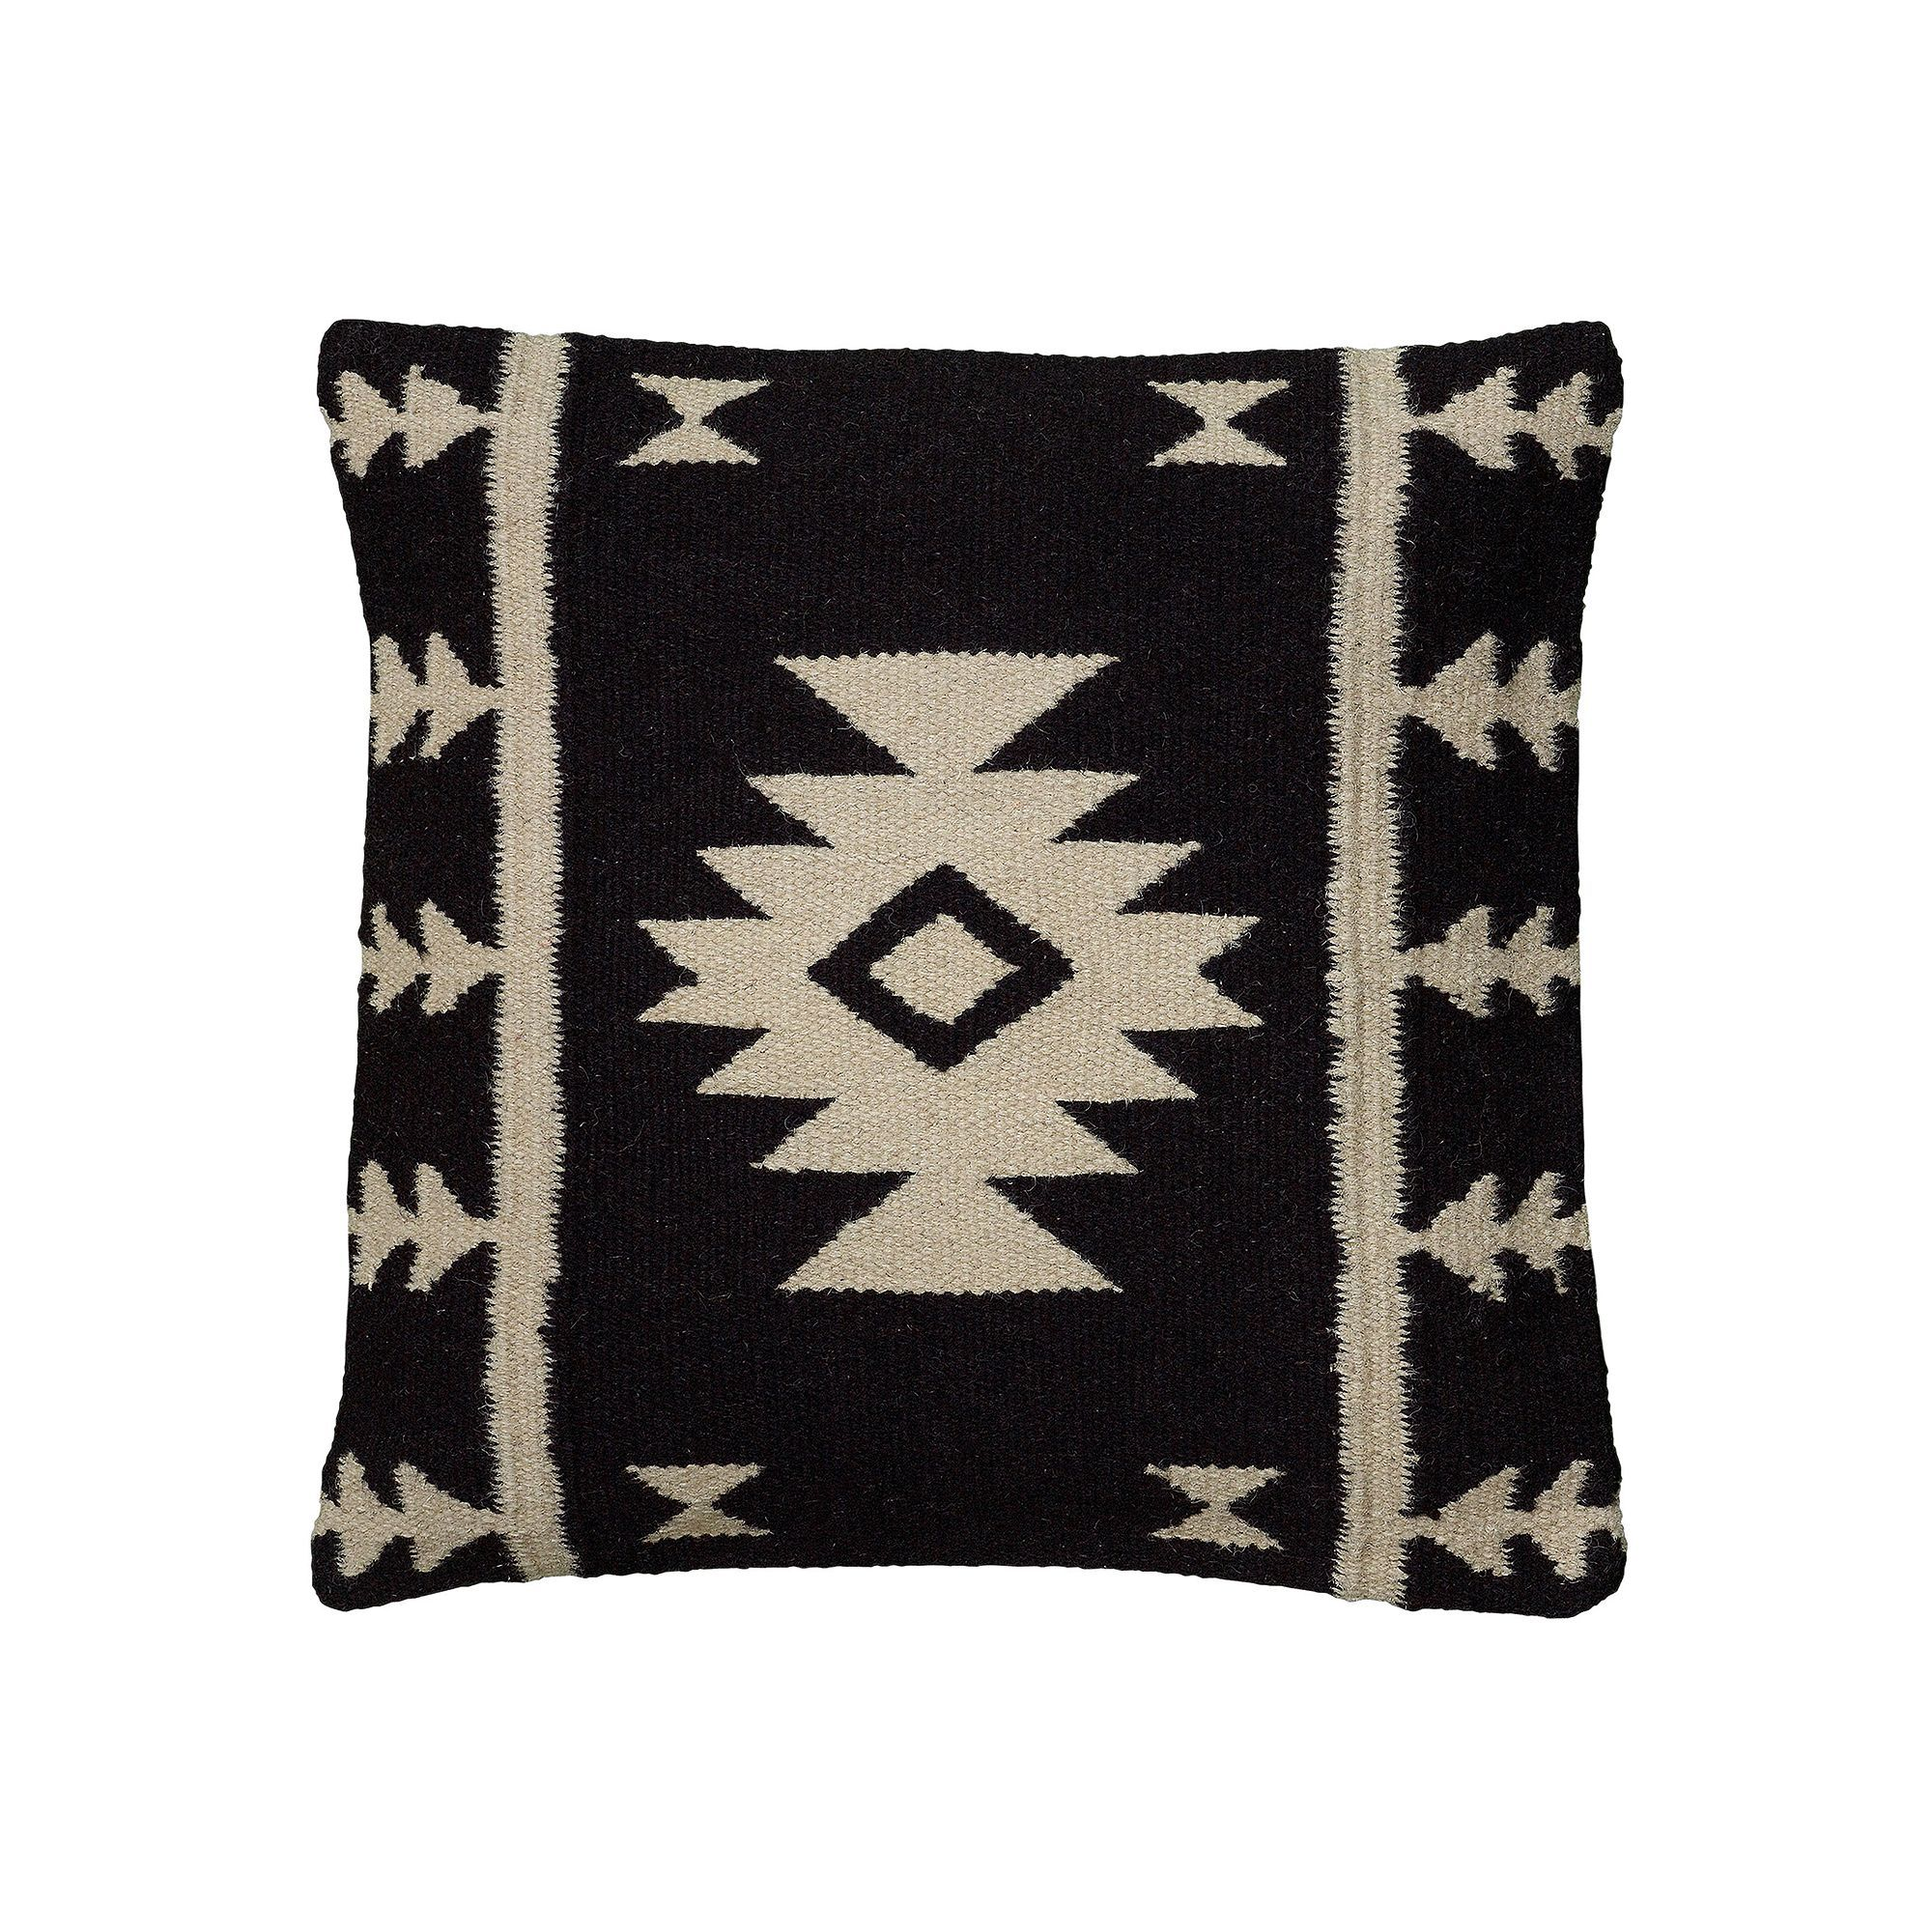 Rizzy Home Southwestern Throw Pillow Throw Pillows Decorative